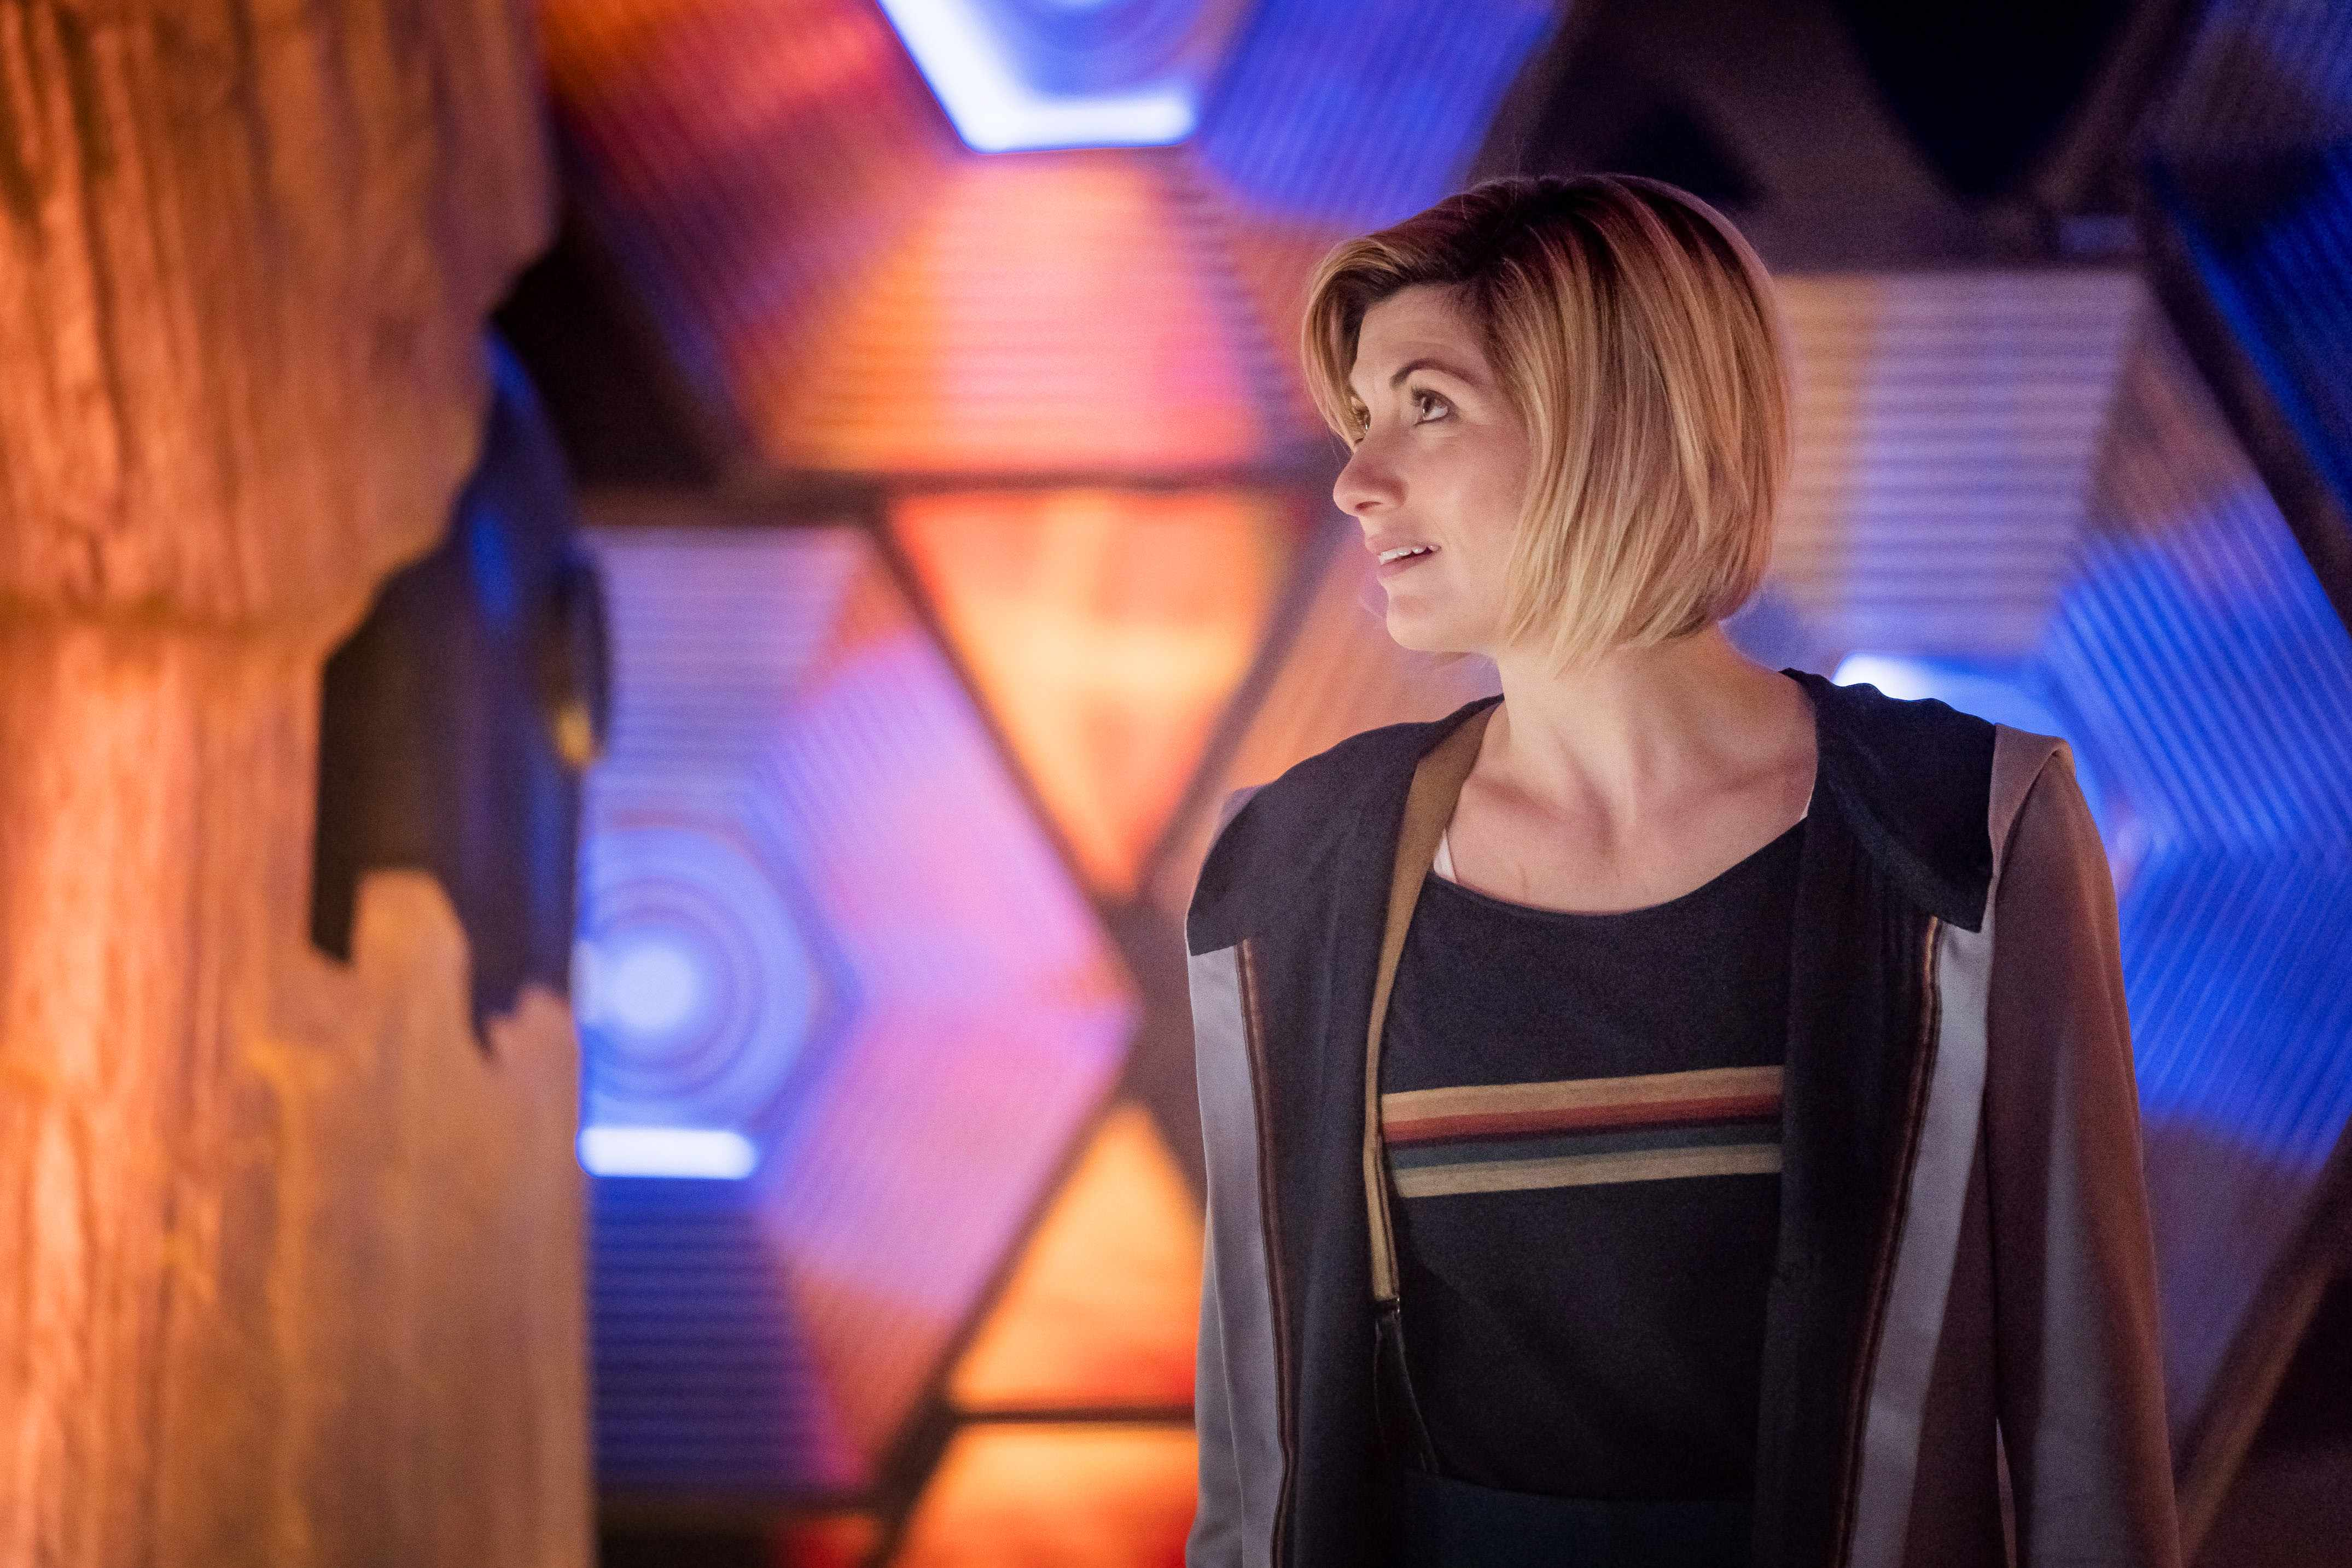 WARNING: Embargoed for publication until 19:50:01 on 14/10/2018 - Programme Name: Doctor Who Series 11 - TX: n/a - Episode: The Ghost Monument (No. 2) - Picture Shows: ++STRICTLY EMBARGOED UNTIL 19:50 HOURS SUNDAY OCTOBER 14TH, 2018+++ The Doctor (JODIE WHITTAKER) - (C) BBC / BBC Studios - Photographer: Coco Van Oppens TL